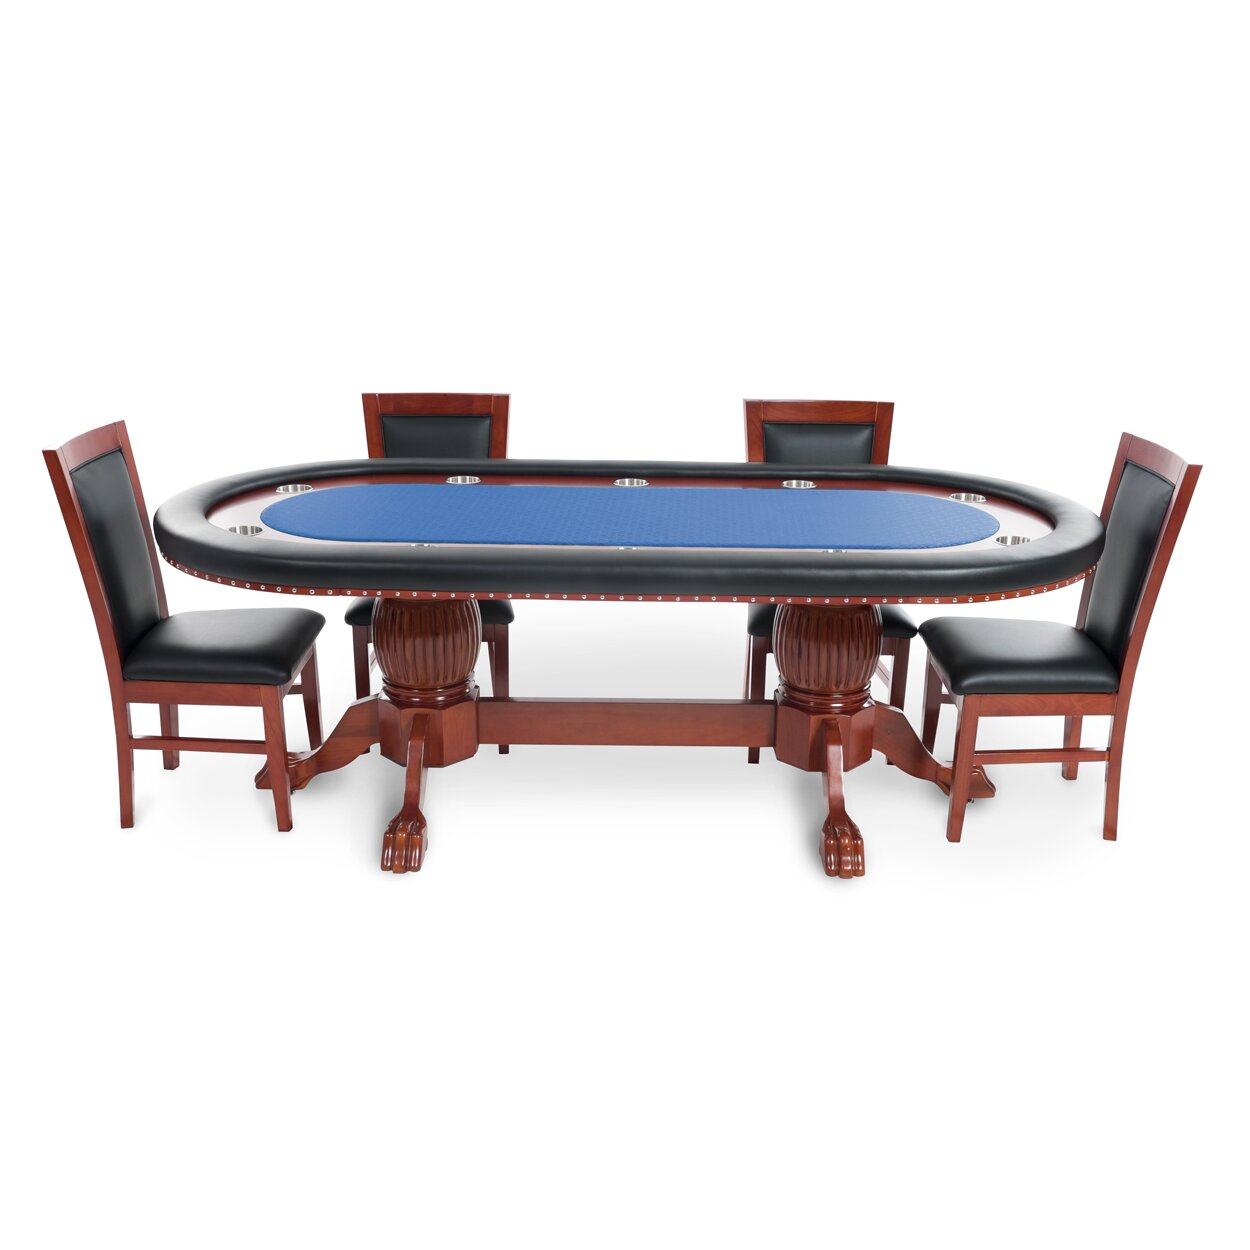 rockwell 8 piece poker dining table set with dining chairs wayfair. Black Bedroom Furniture Sets. Home Design Ideas